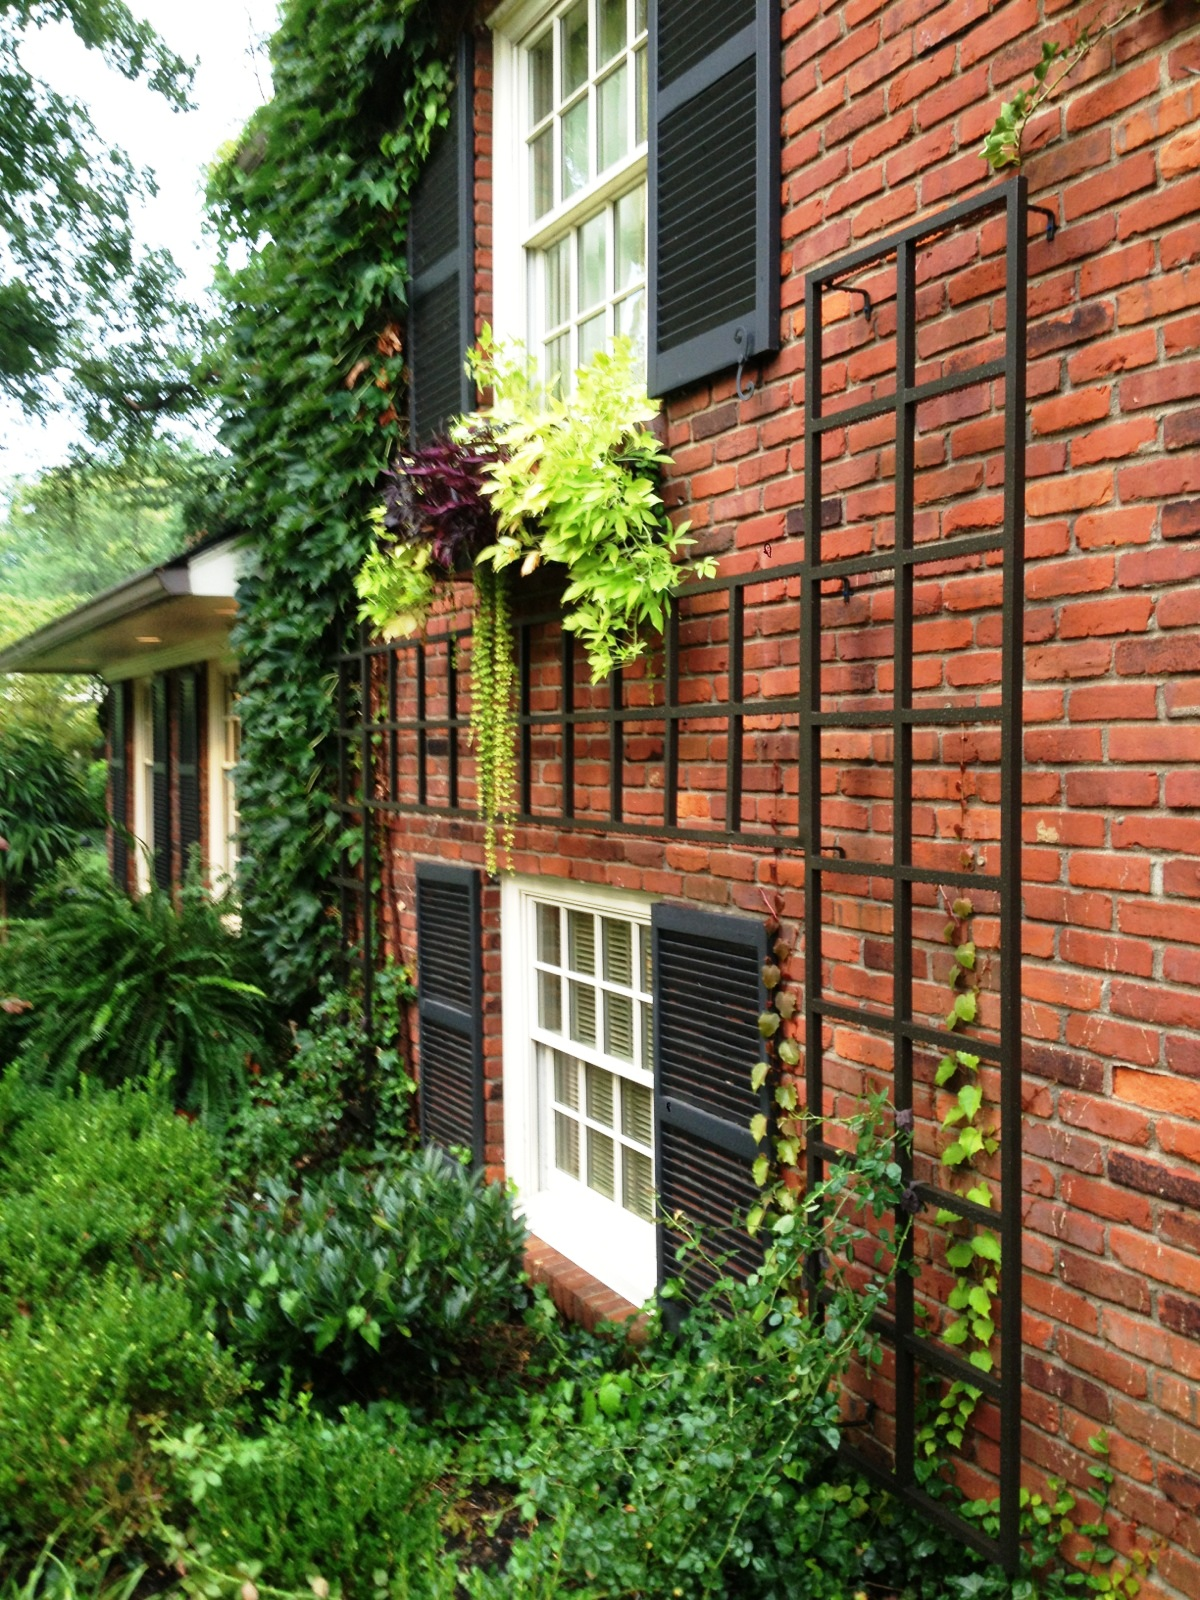 Trellis ideas for privacy - Vertical Gardening Aid